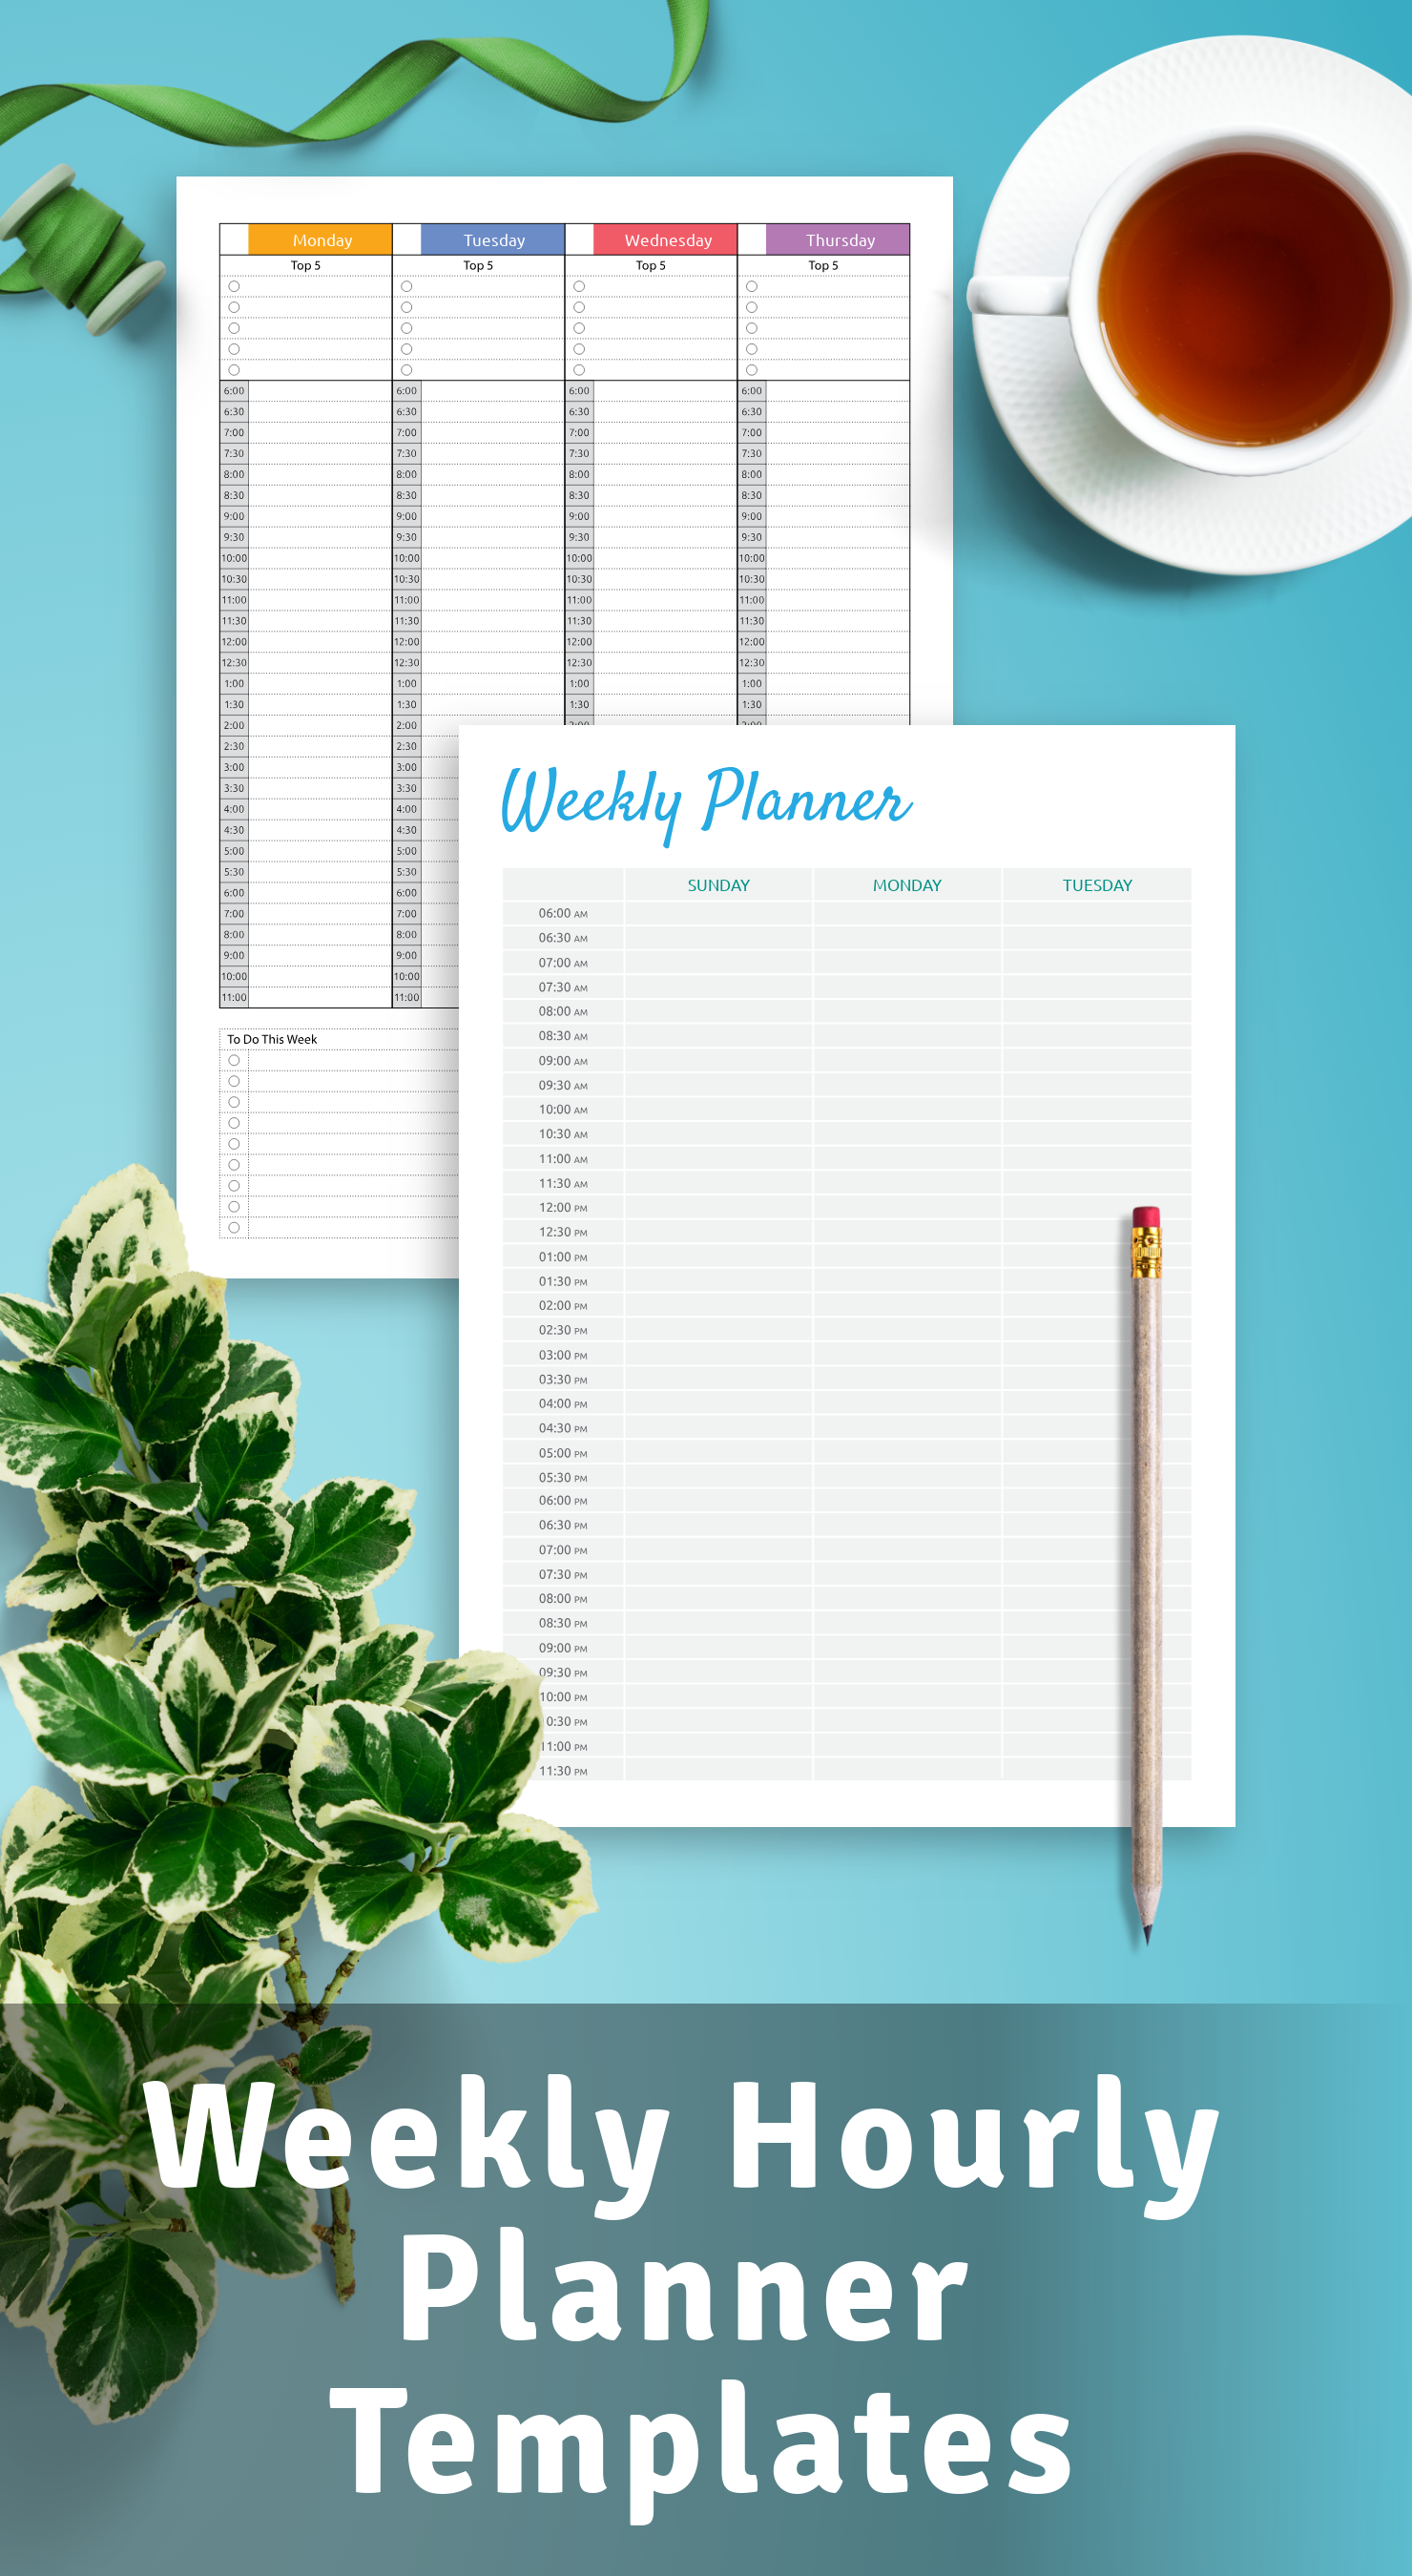 Best Weekly Hourly Planner Templates